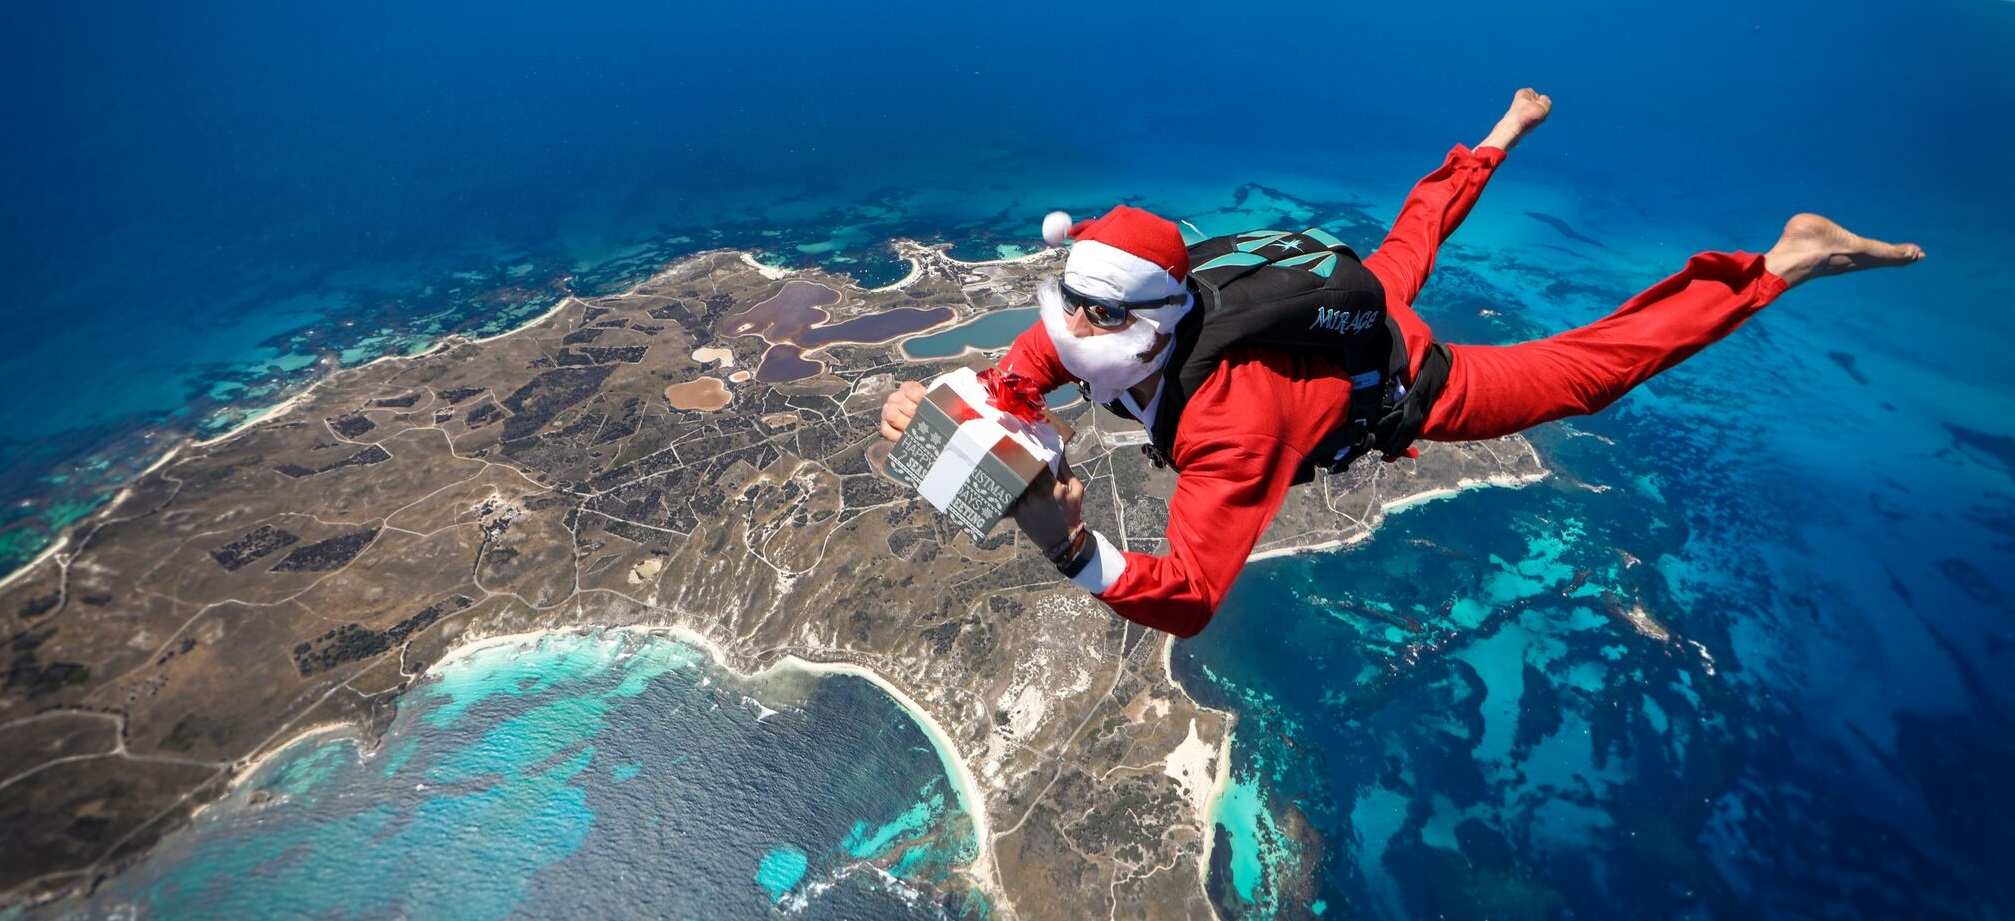 Santa with a present skydiving over rottnest